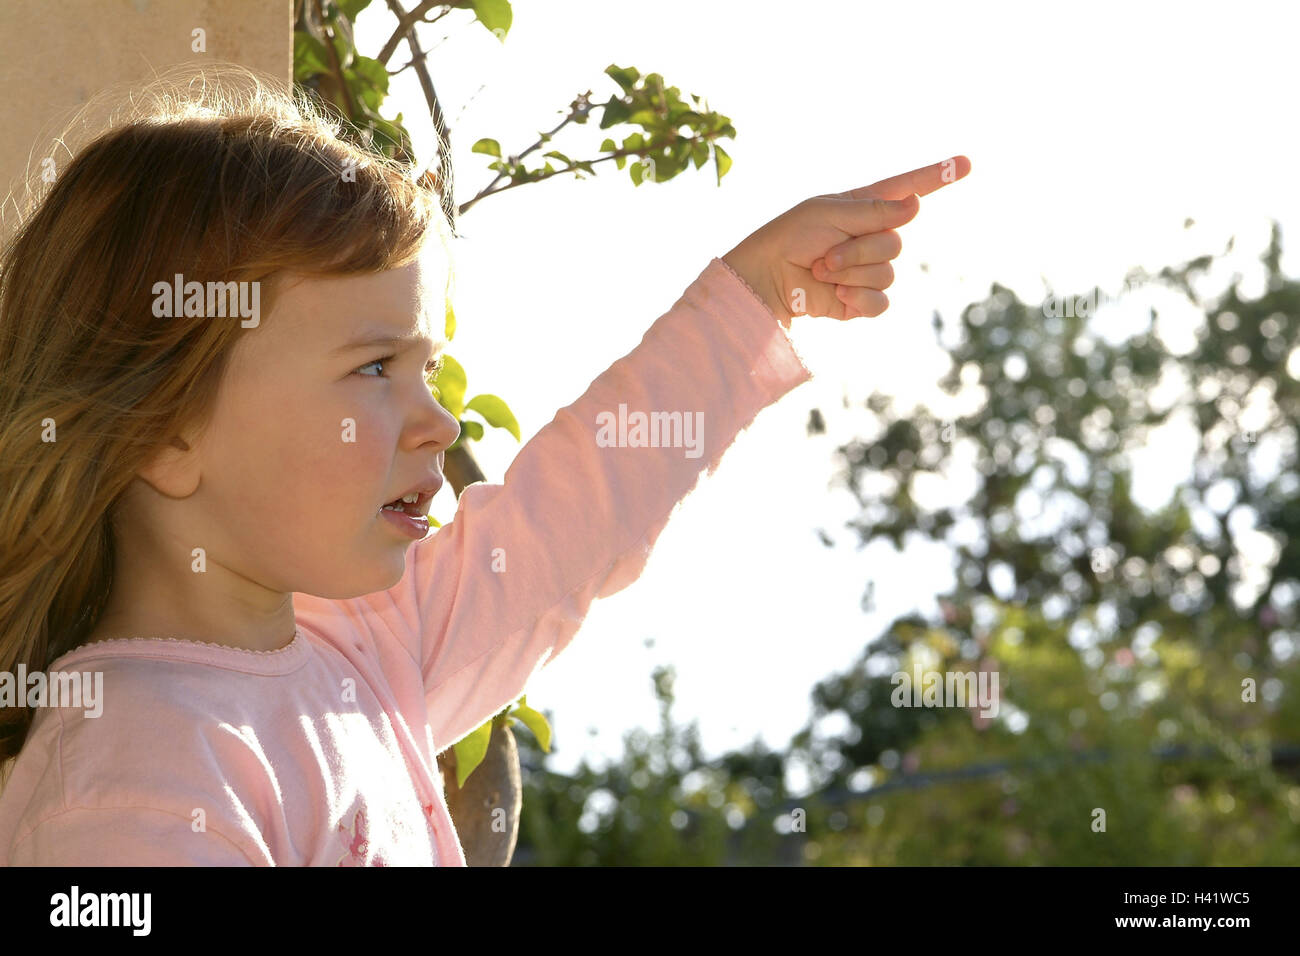 Girls, seriously, gesture, pointing, tread, child, infant, childhood, curiosity, thirst for knowledge, interest, - Stock Image